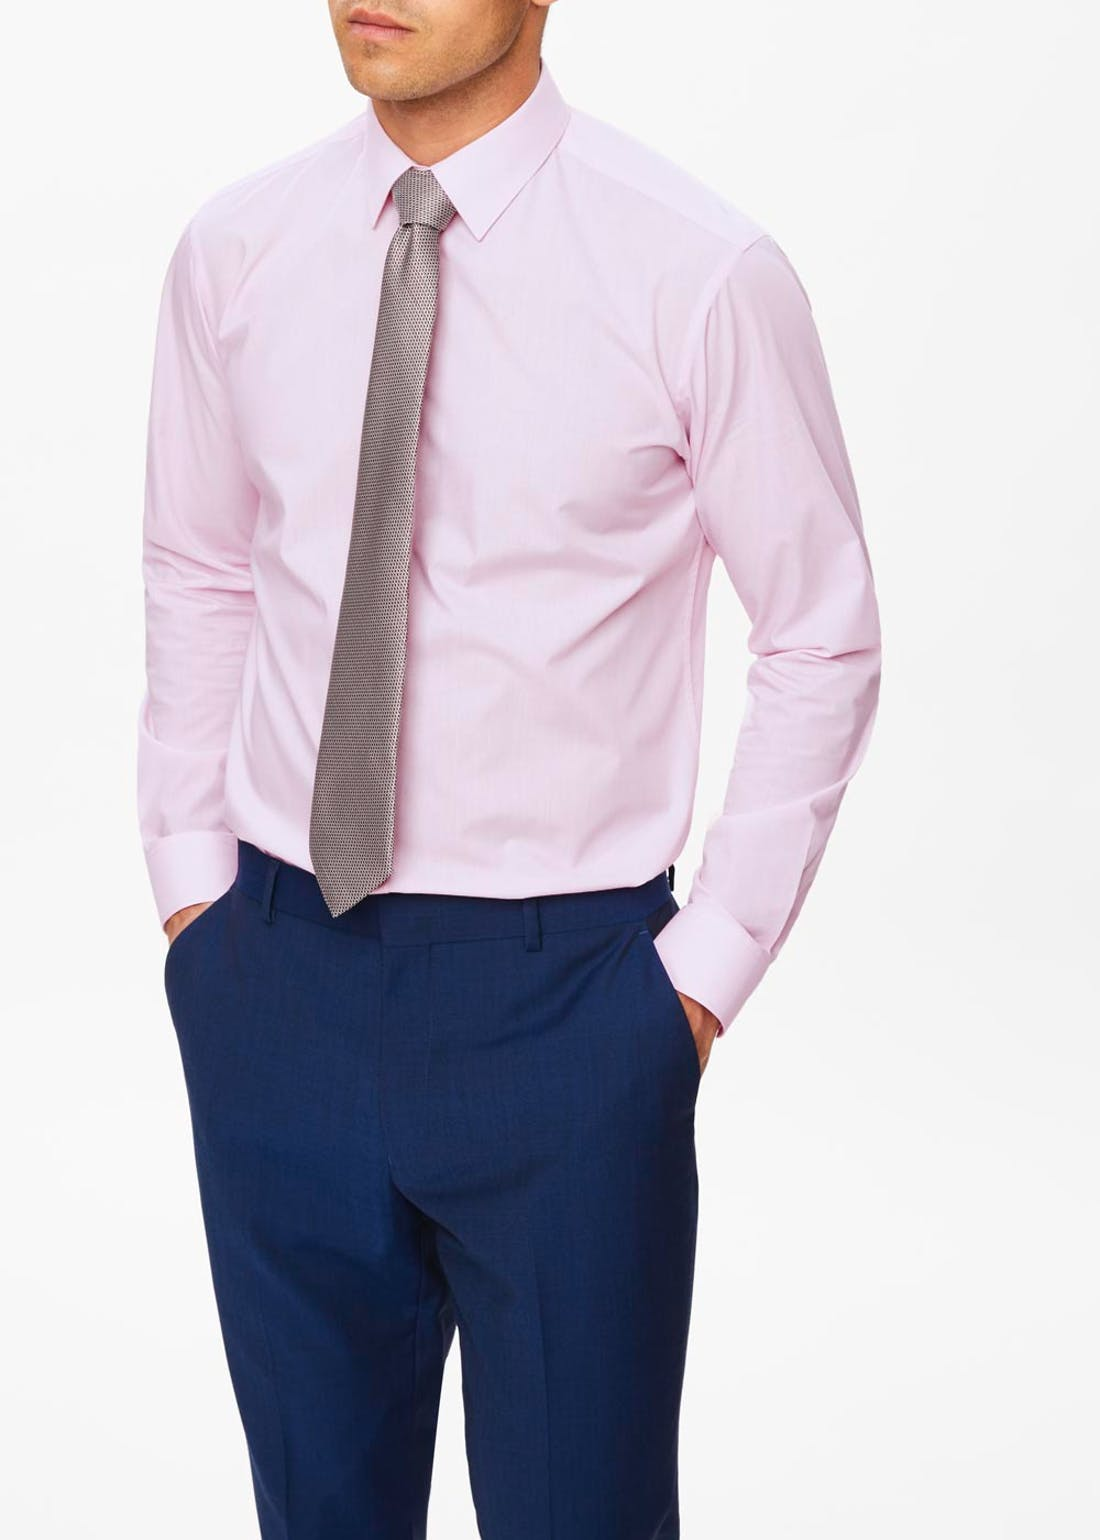 Regular Fit Twill Shirt & Tie Set